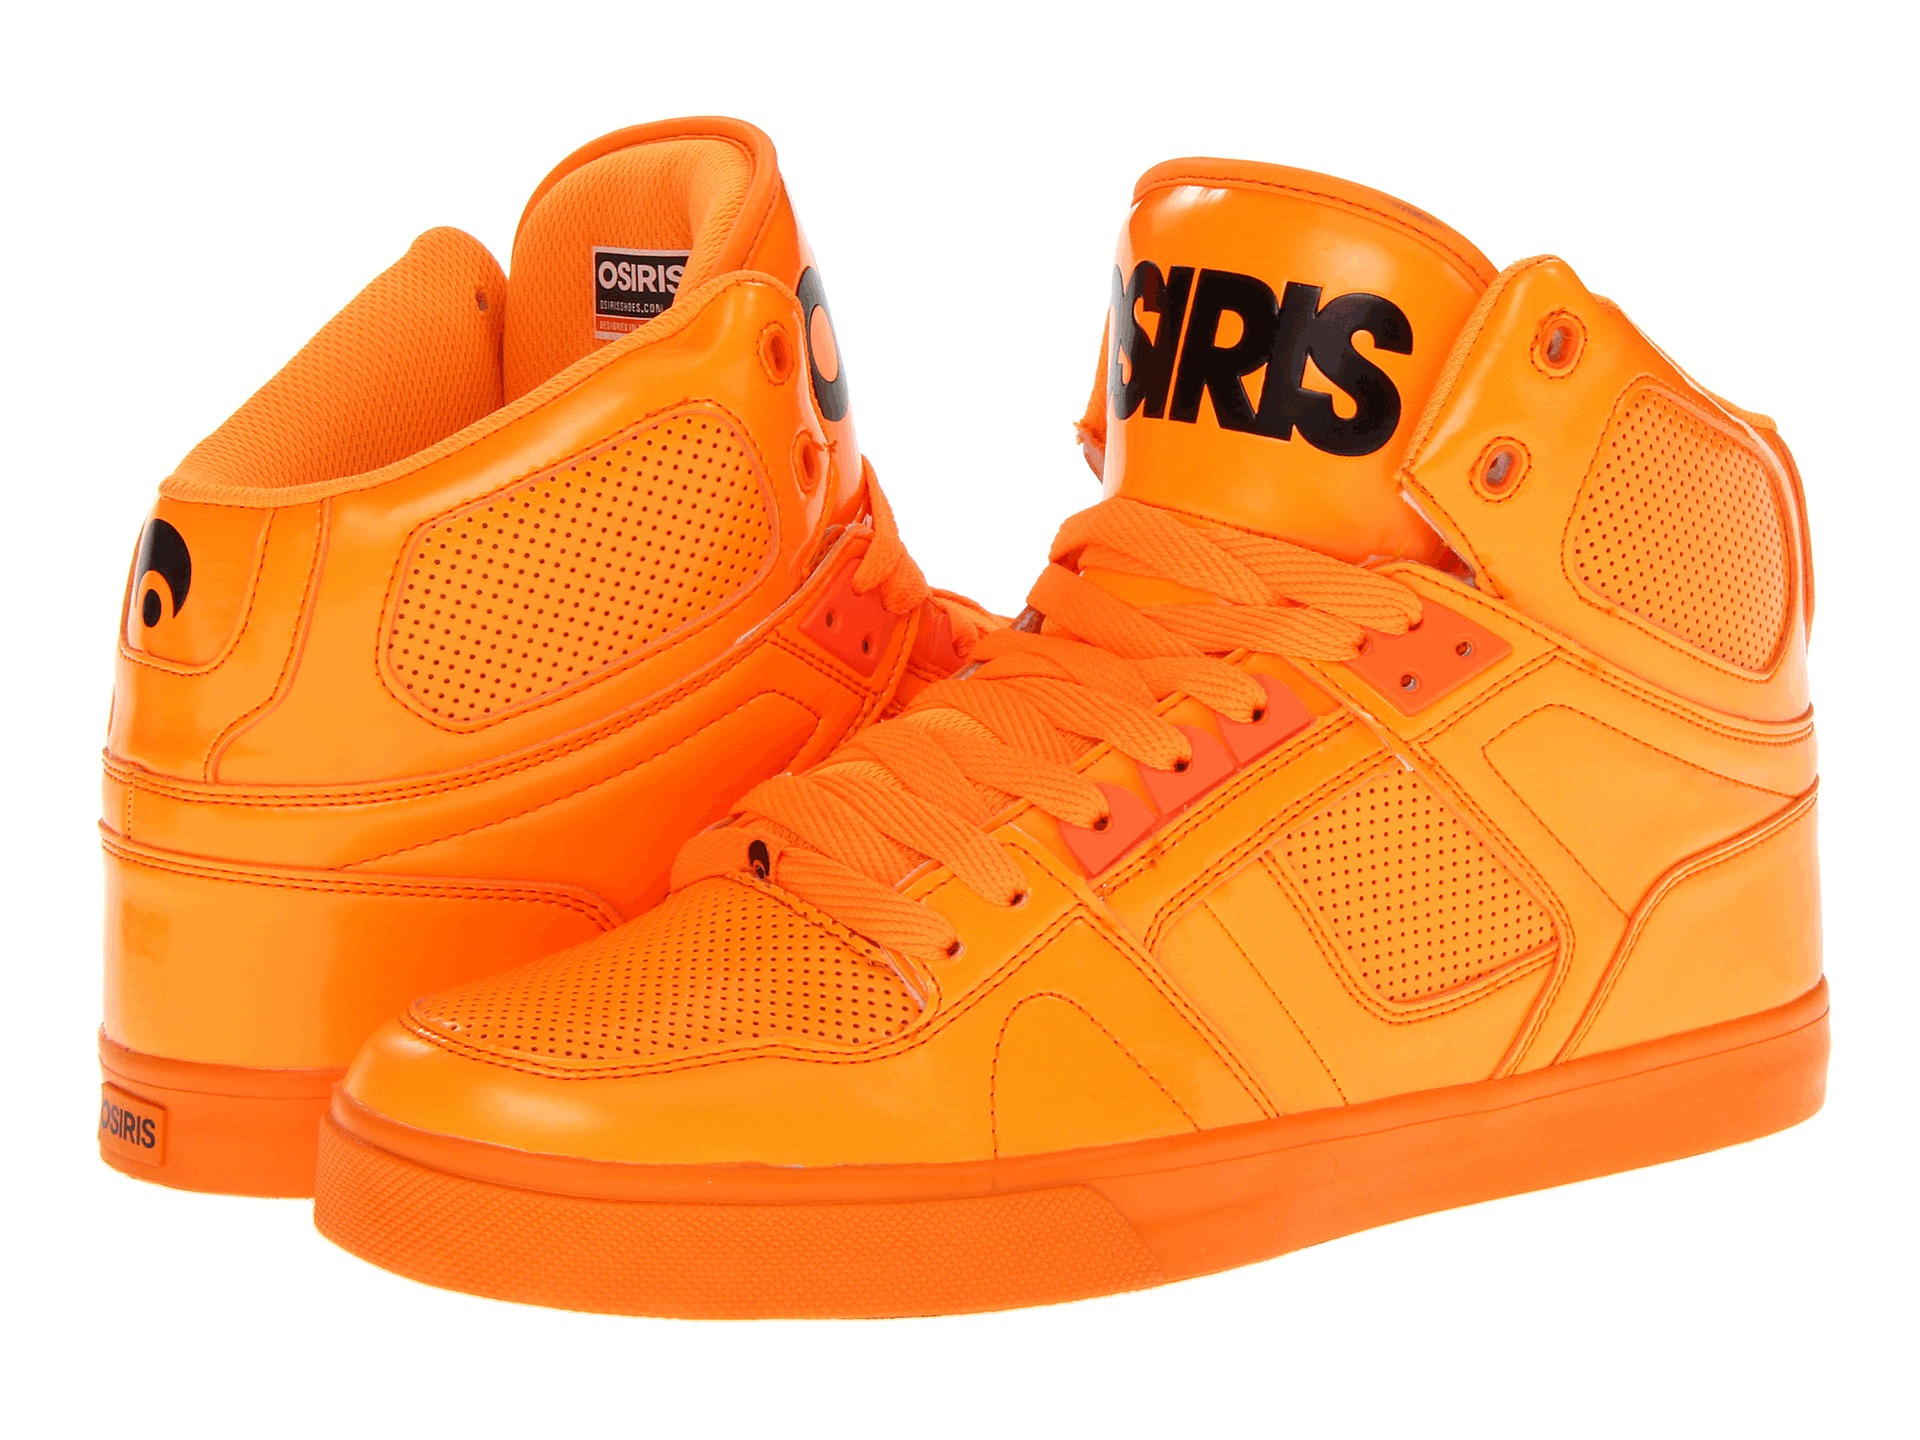 Where To Buy Osiris Shoes In Canada